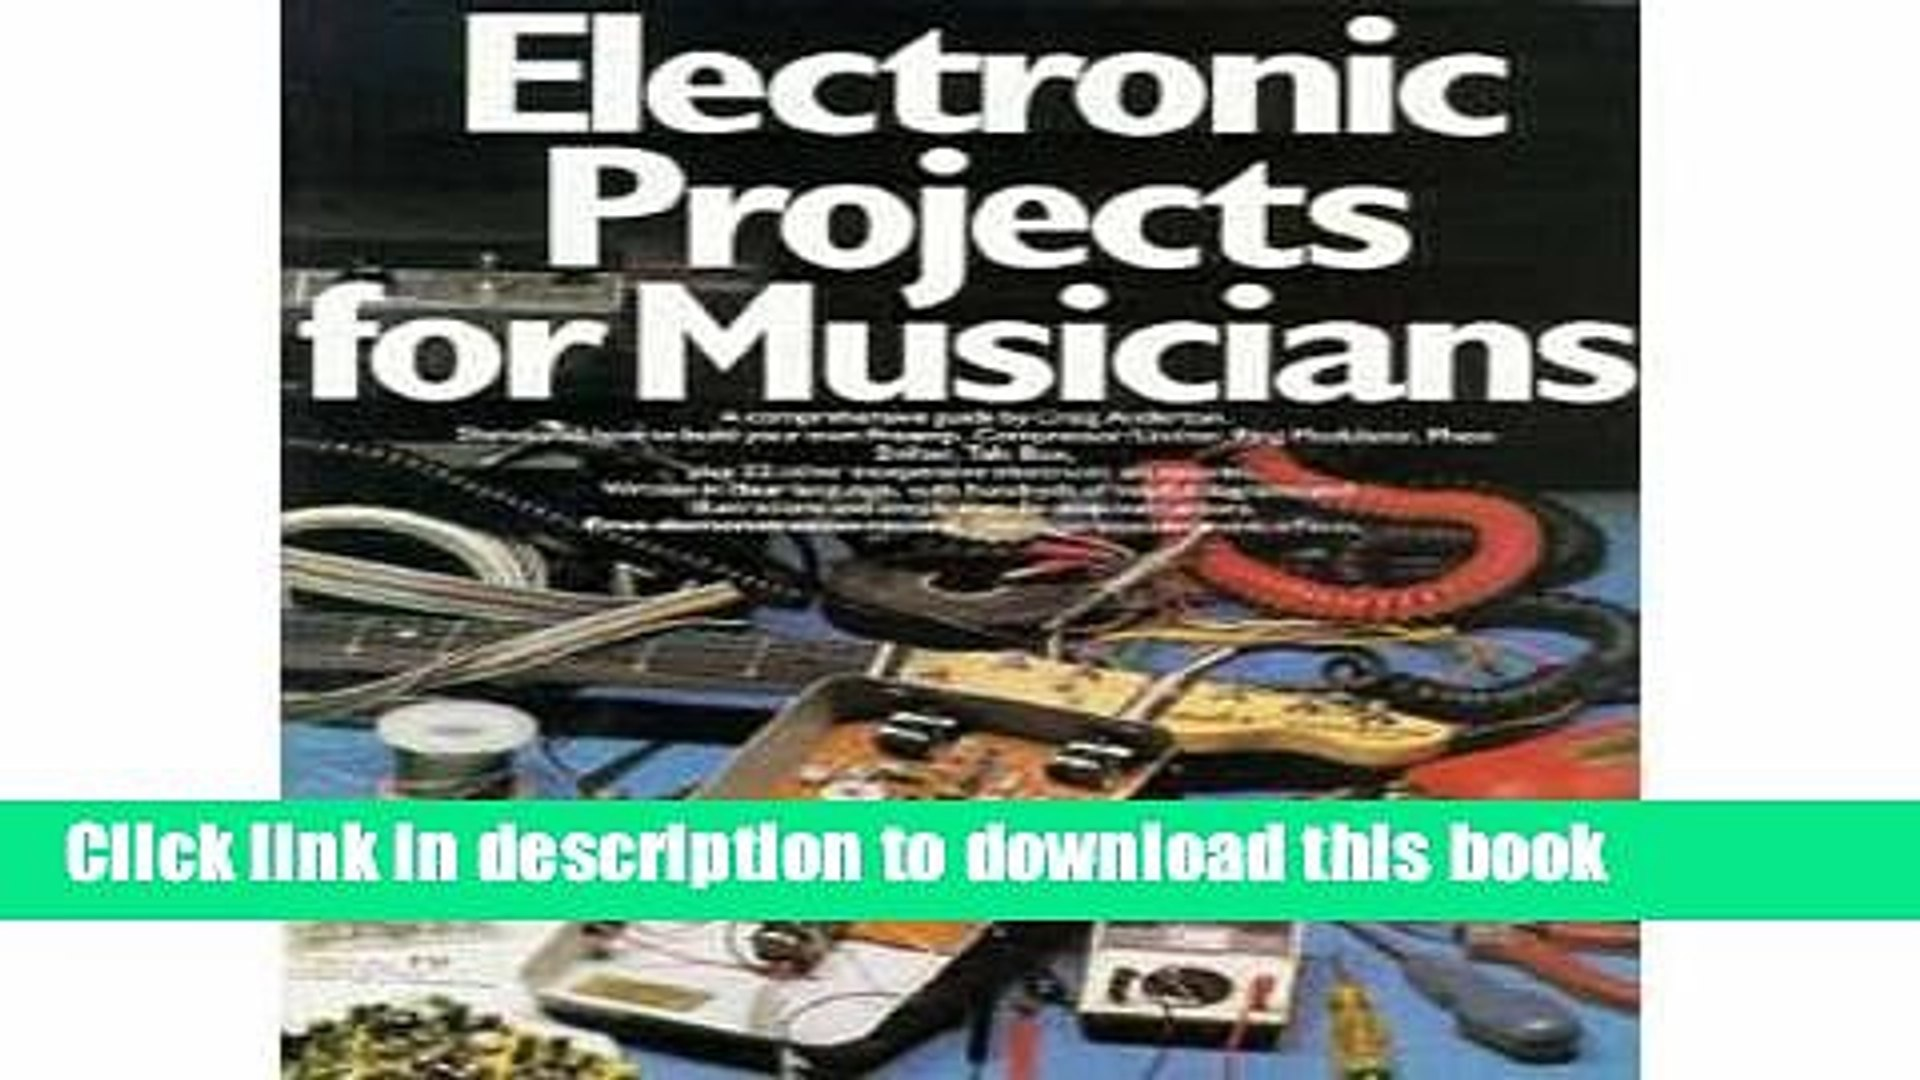 Read Book Electronic Projects for Musicians PDF Online